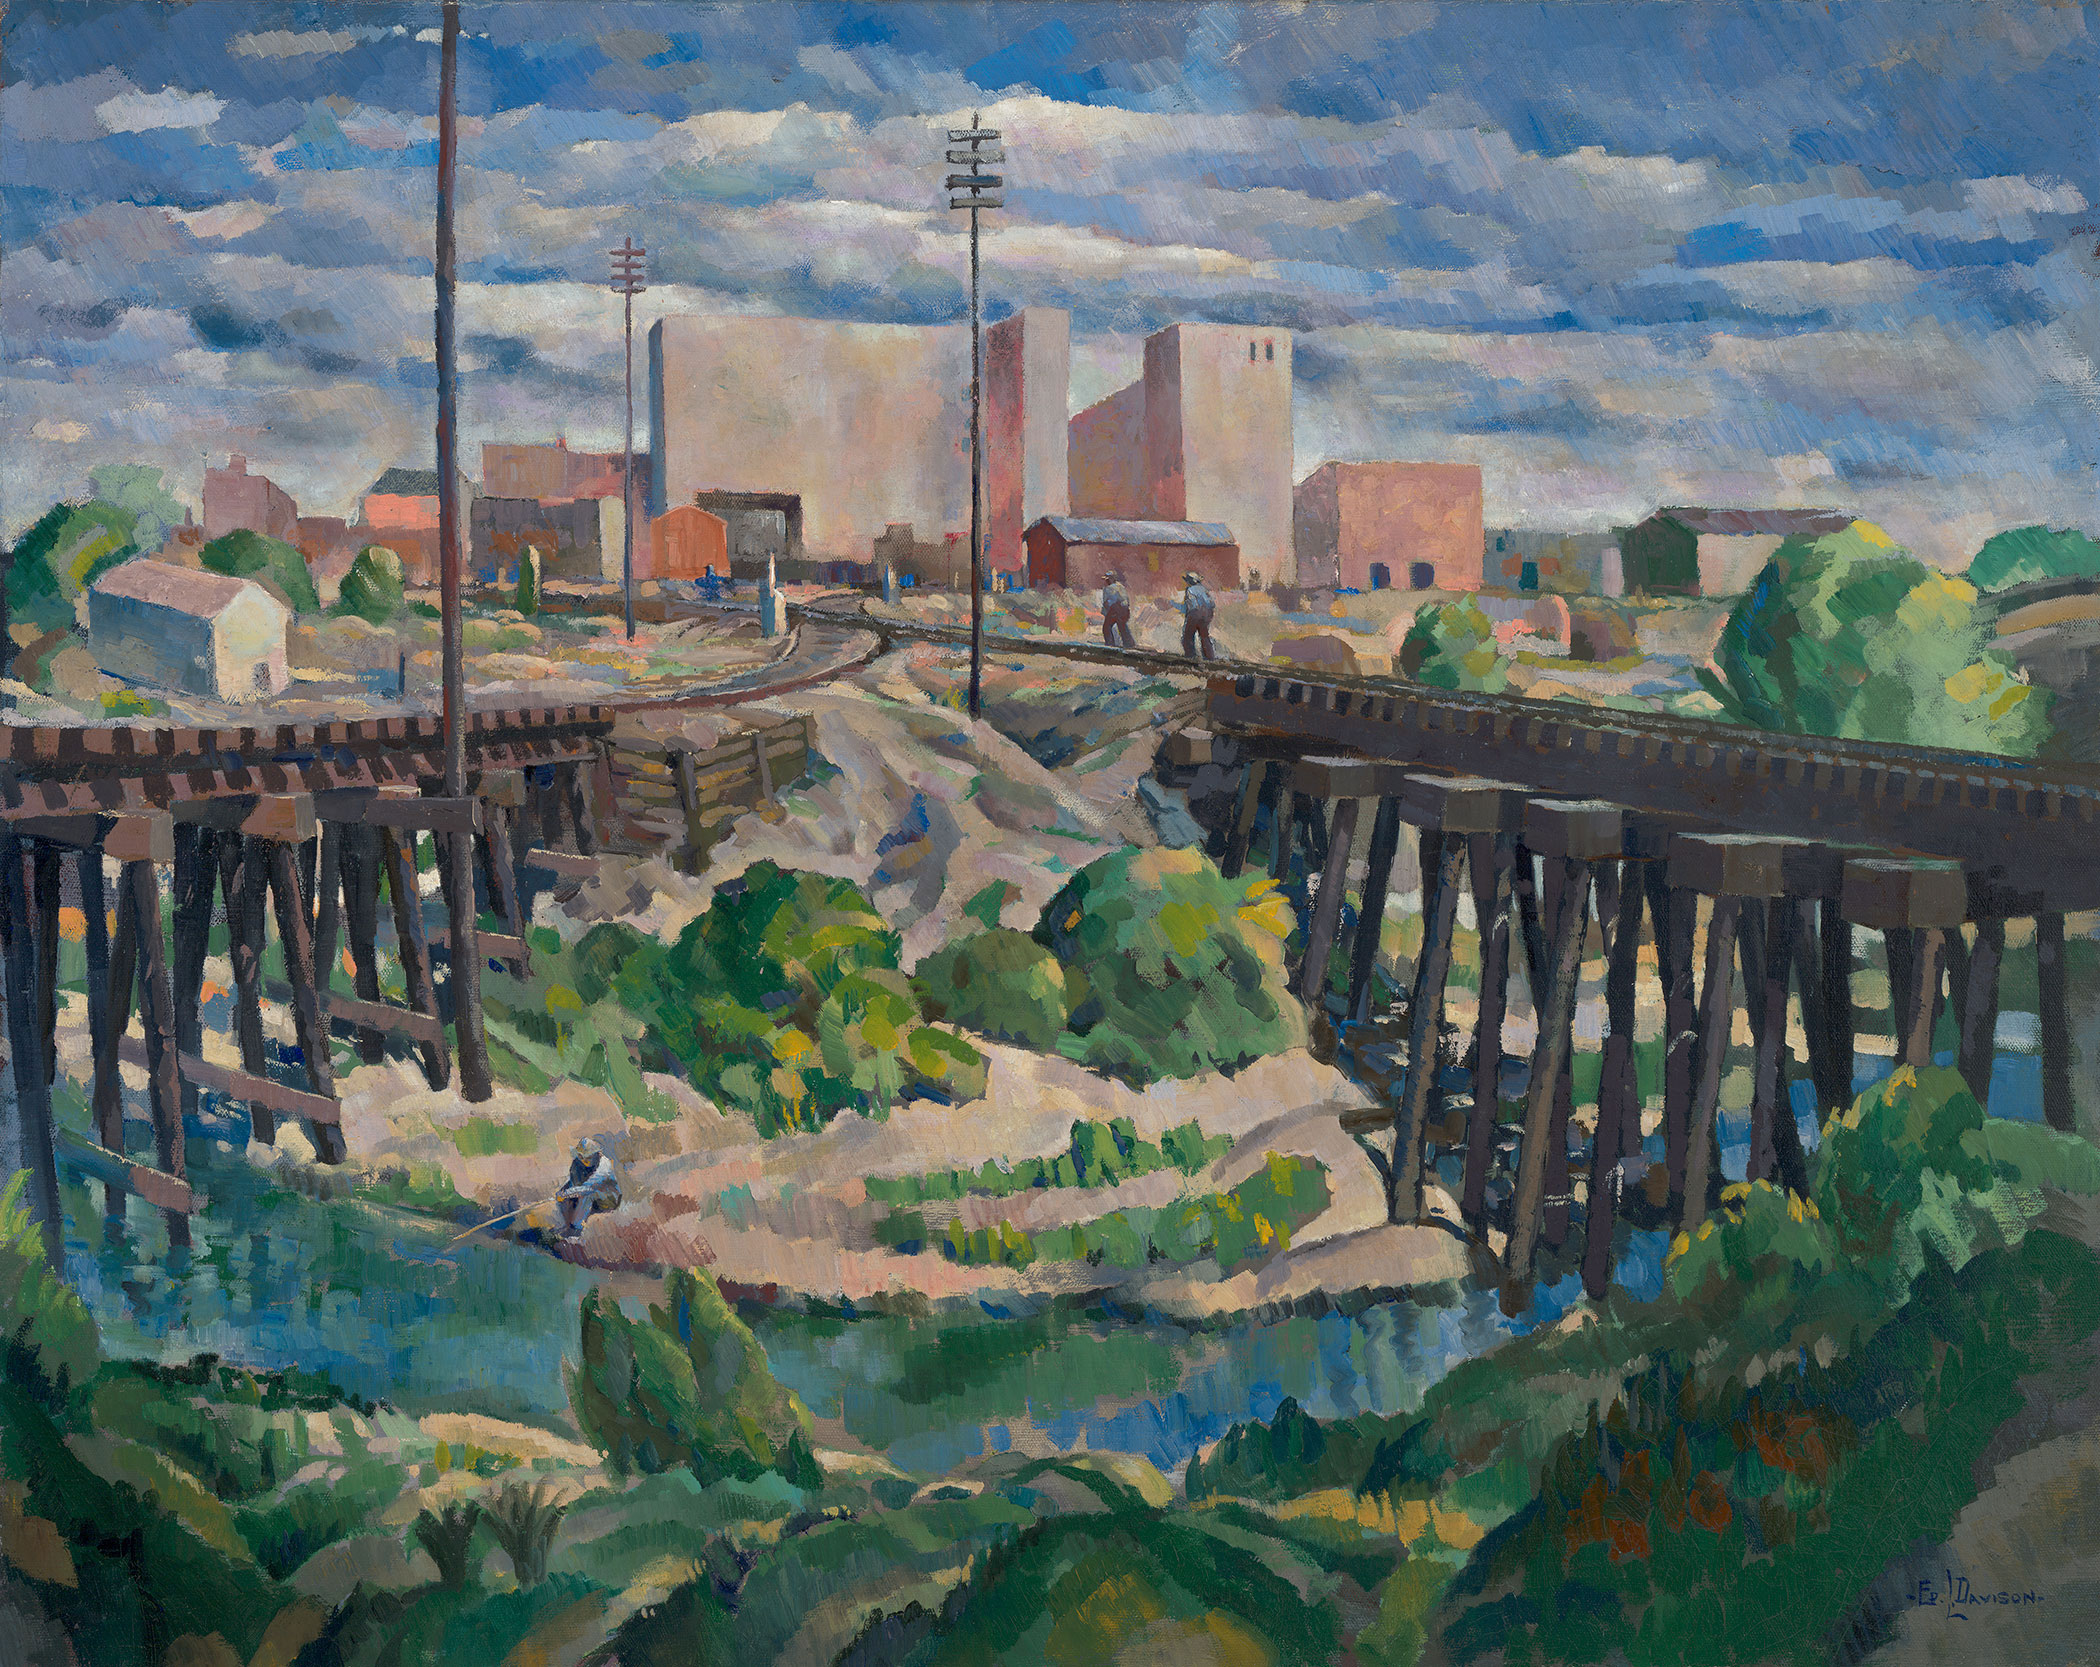 An oil painting of two railroad bridges coming together with a person fishing in the river below and two men walking the tracks.